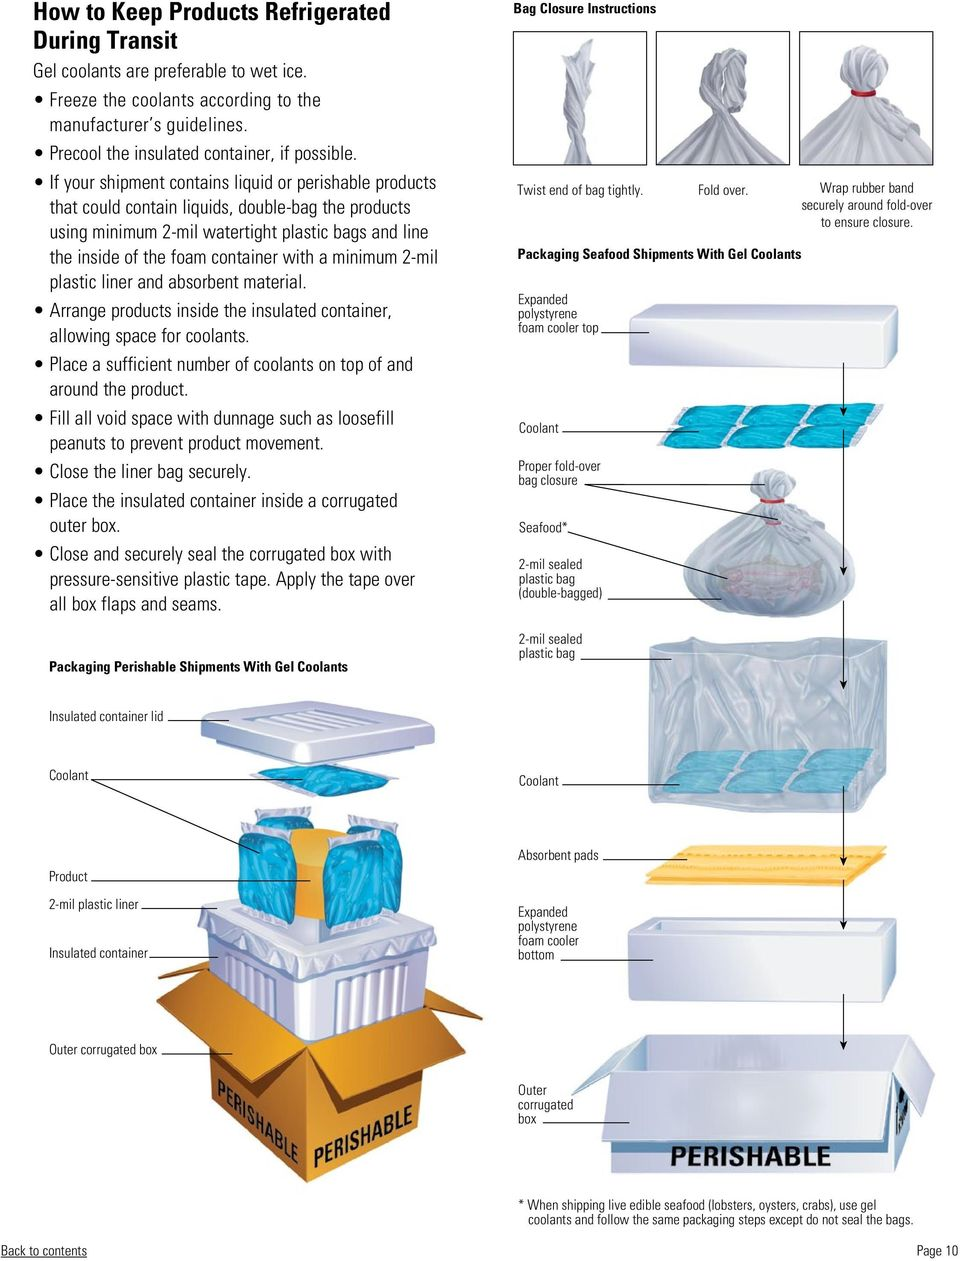 a minimum 2-mil plastic liner and absorbent material. Arrange products inside the insulated container, allowing space for coolants.